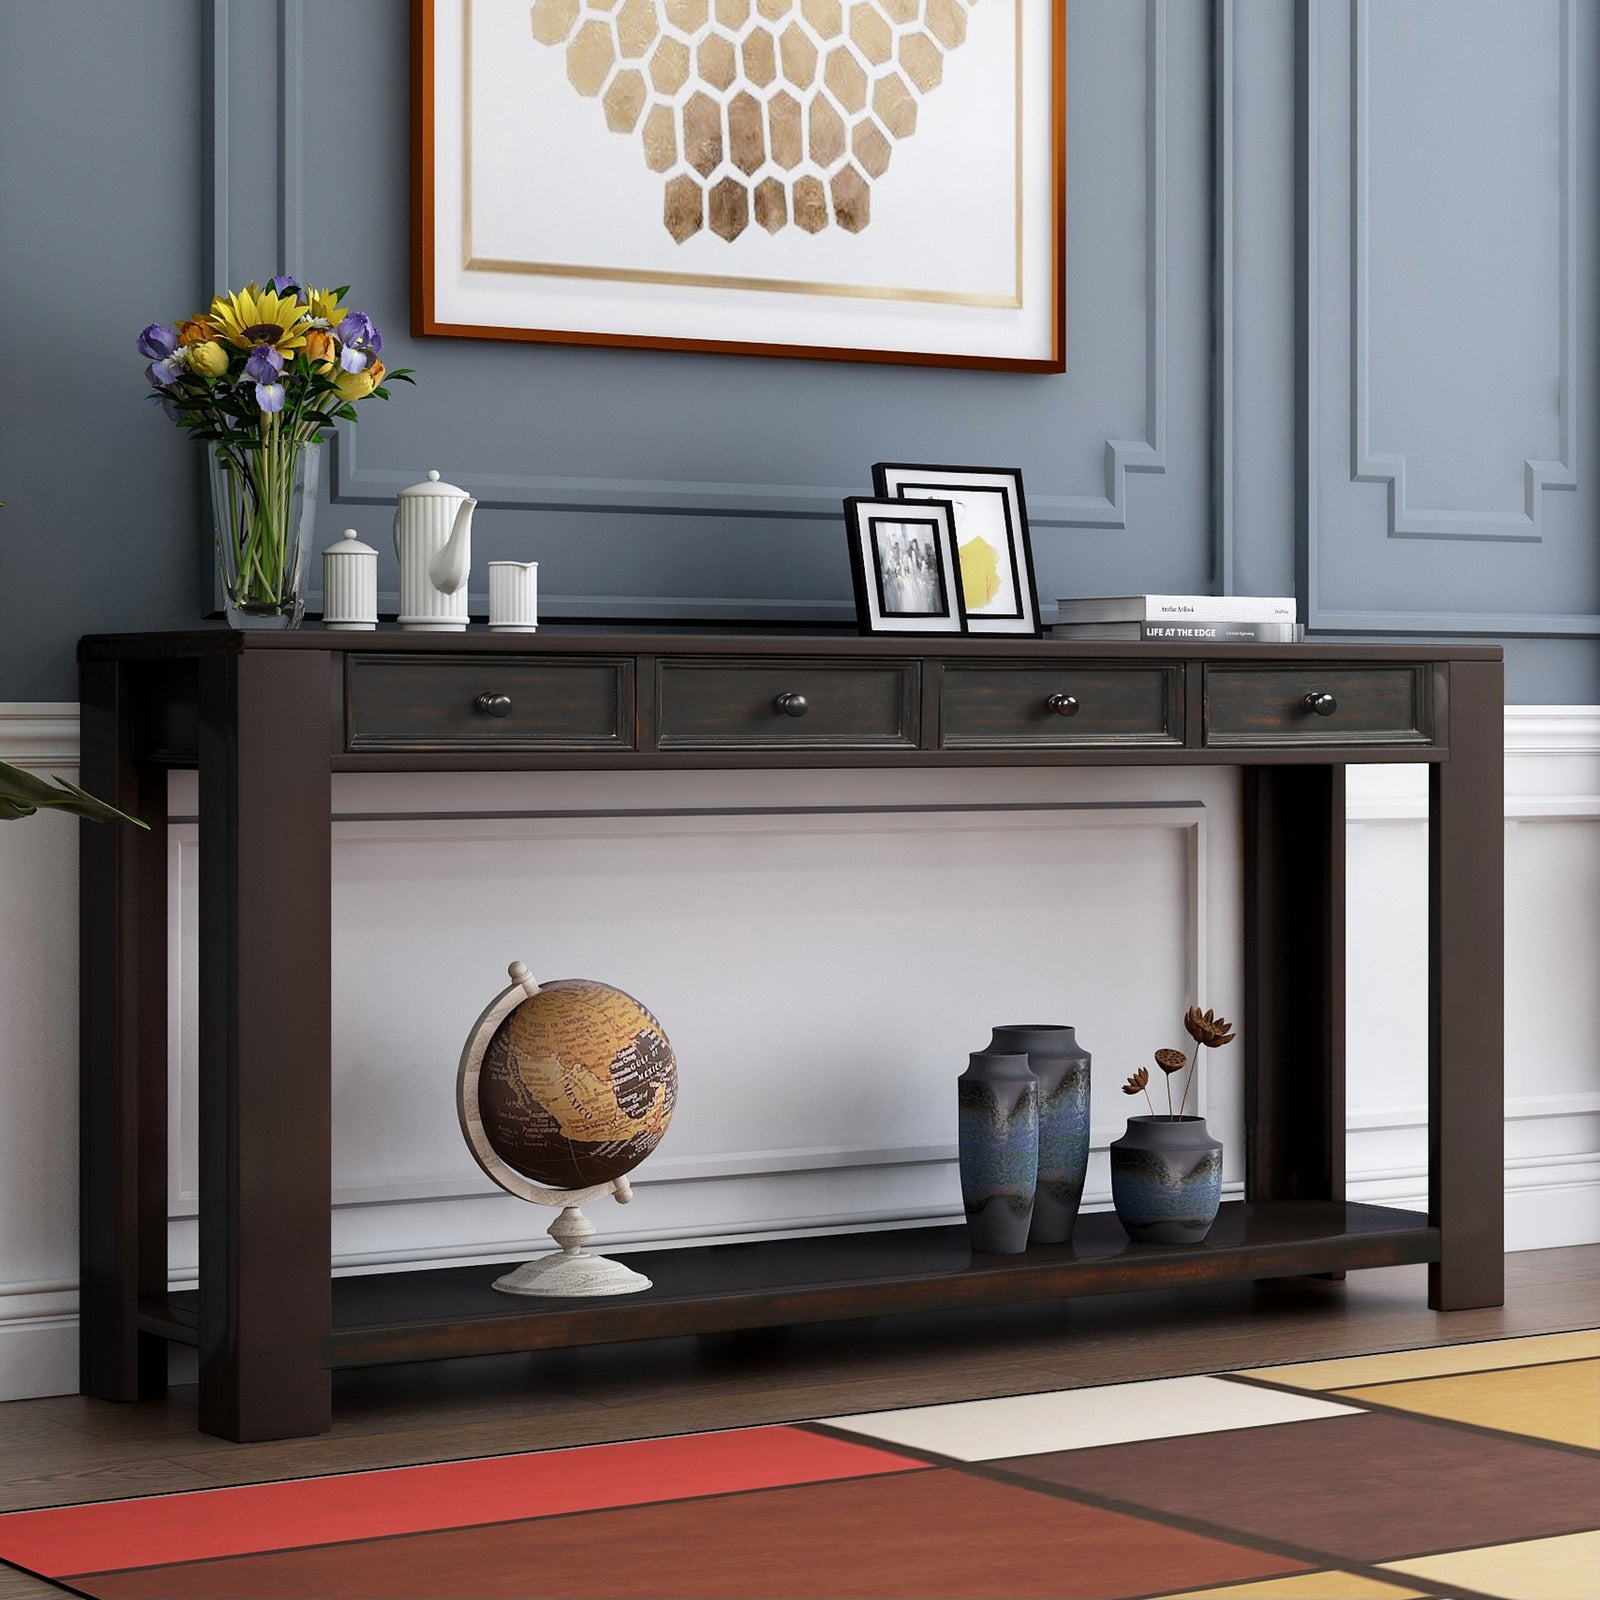 Gray Rectangular Console Table for Entryway Hallway Sofa Table with Storage Drawers and Bottom Shelf BH189615